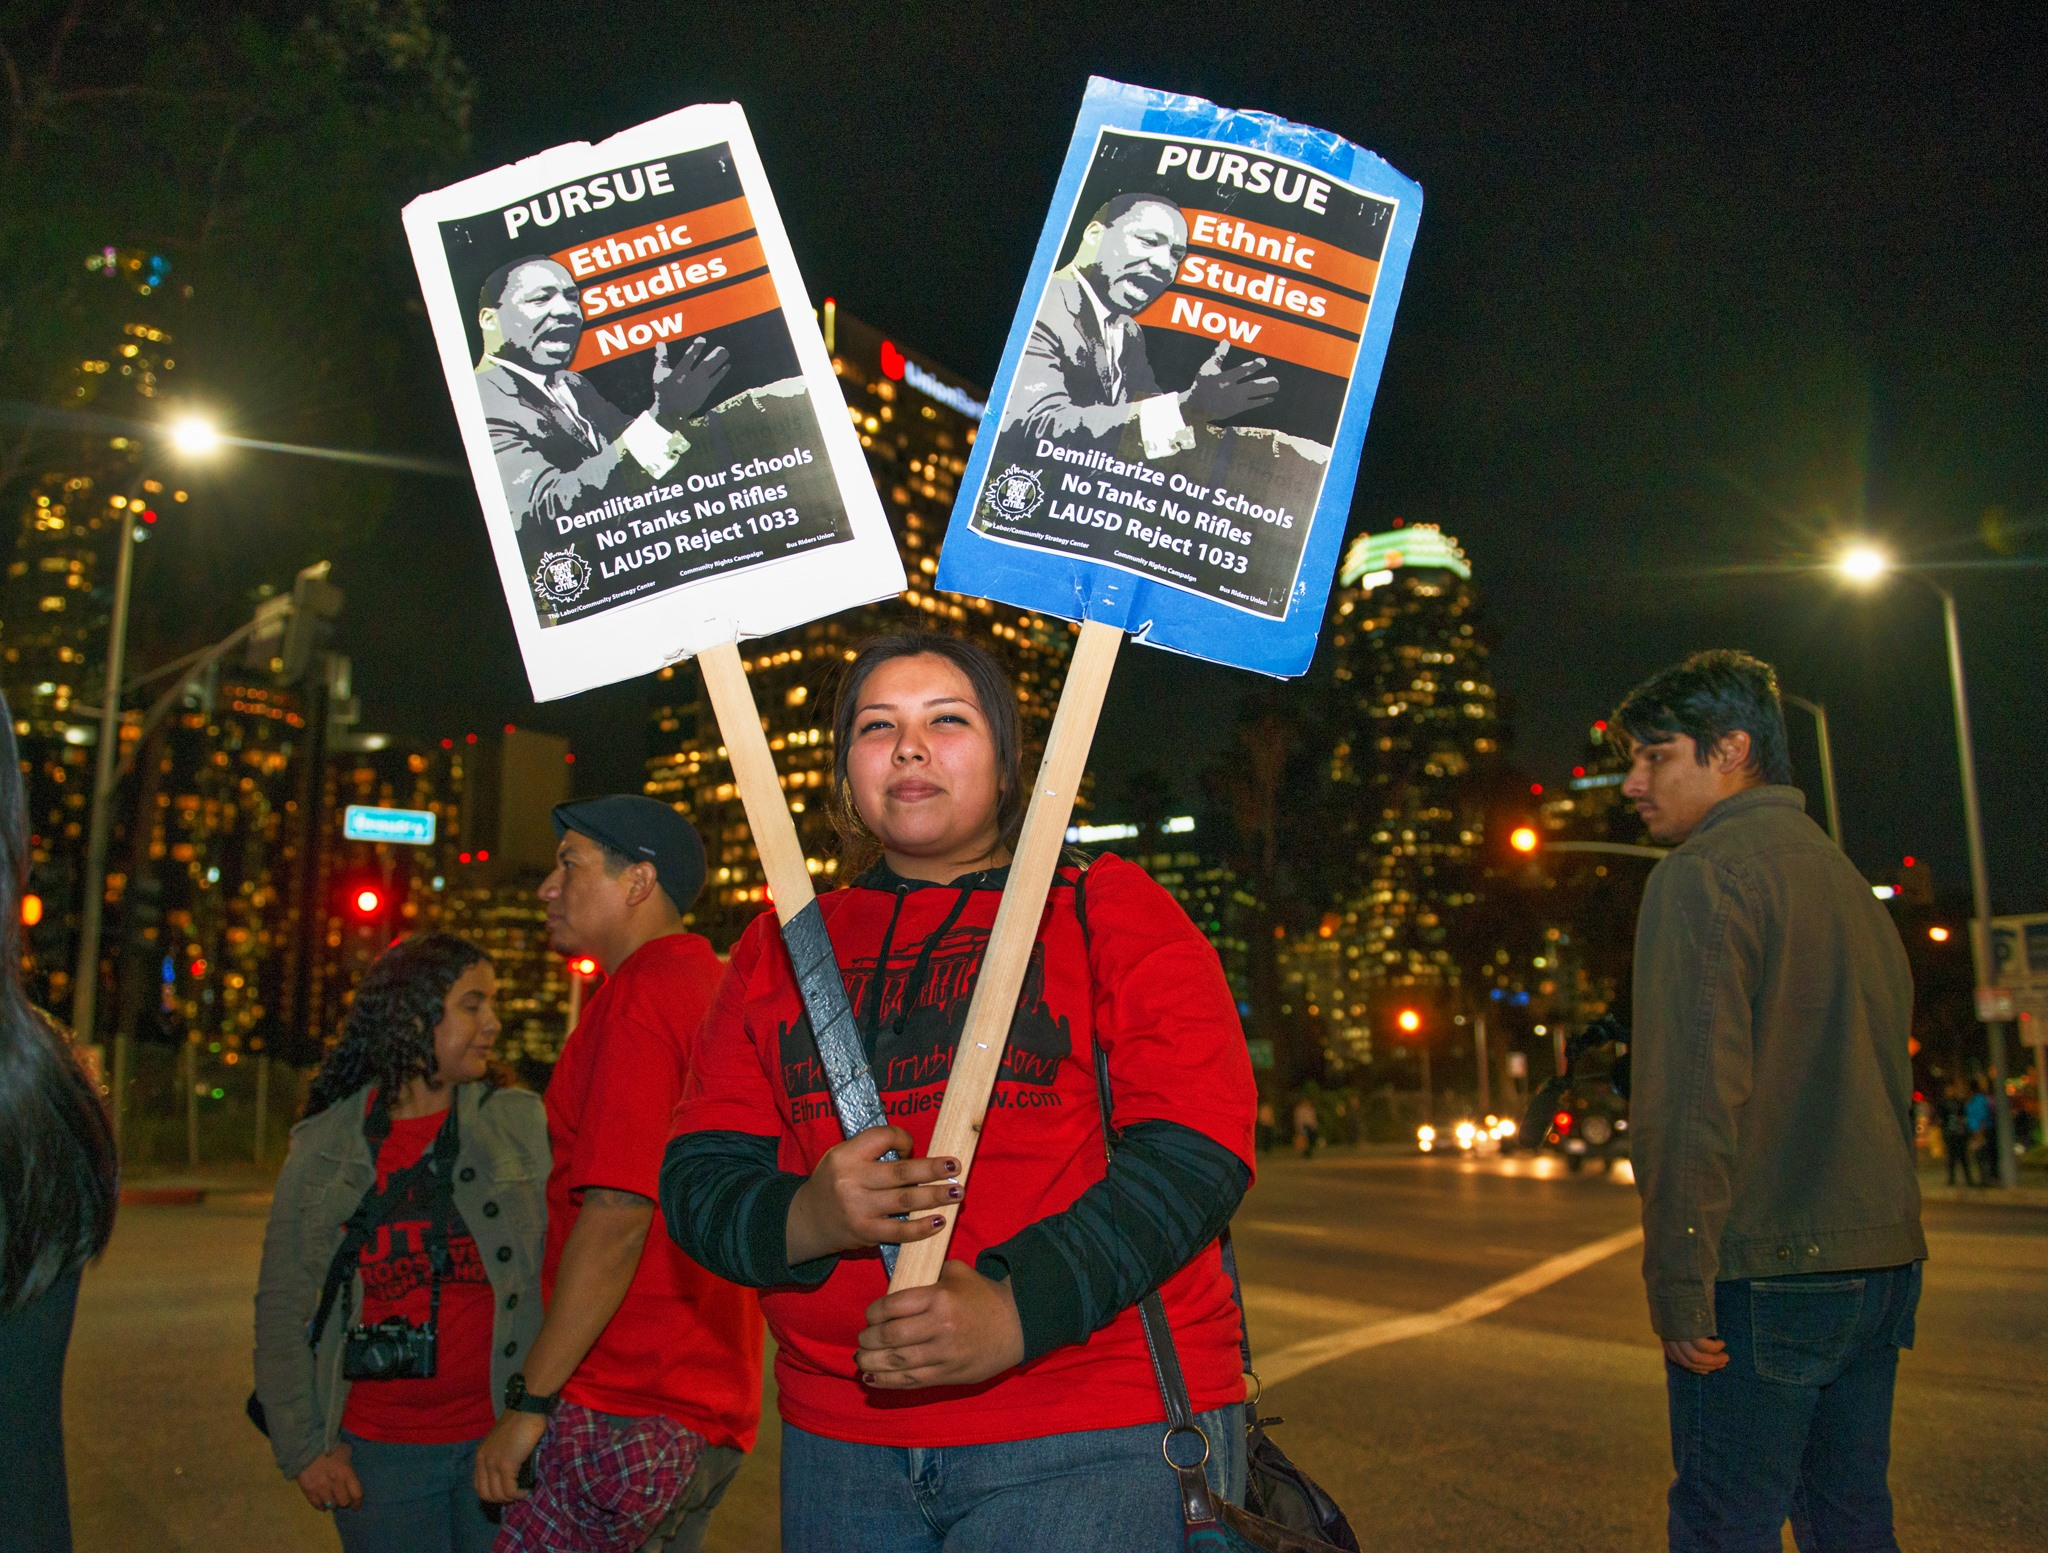 credit_Revo_Grafia_-_rally_-_night_-_outside_Beaudry_-_with_Pursue_Ethnic_Studies_Now_sign_-_ESNC.jpg